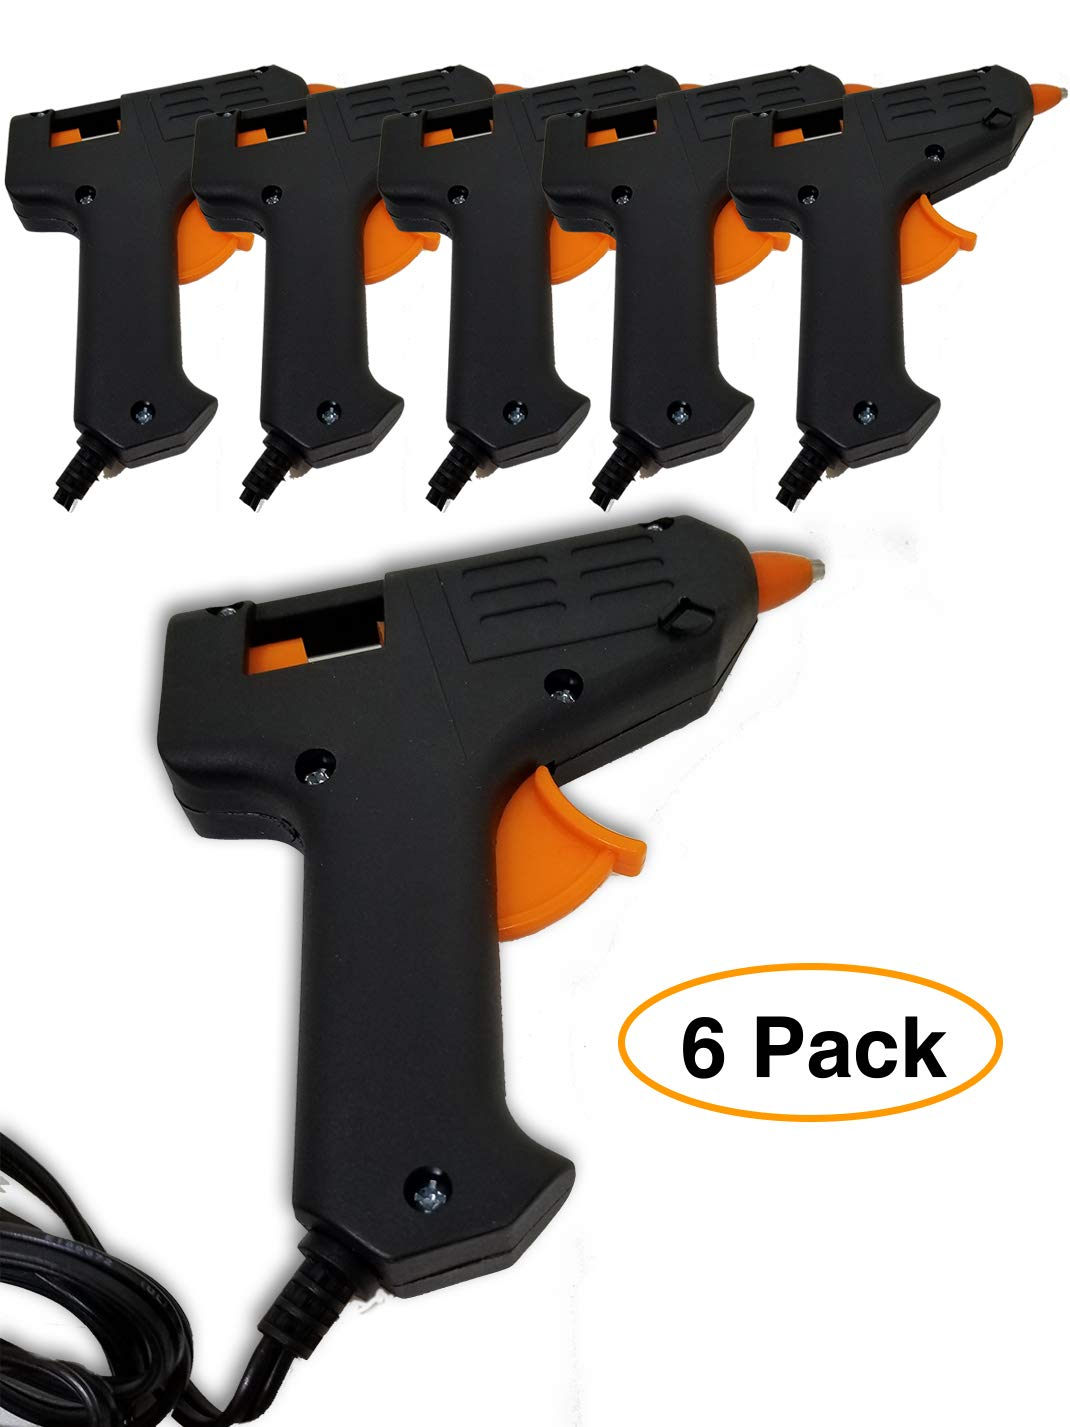 Hot Melt Mini Glue Gun (6 pack) for Arts & Crafts, Schools & Repairs